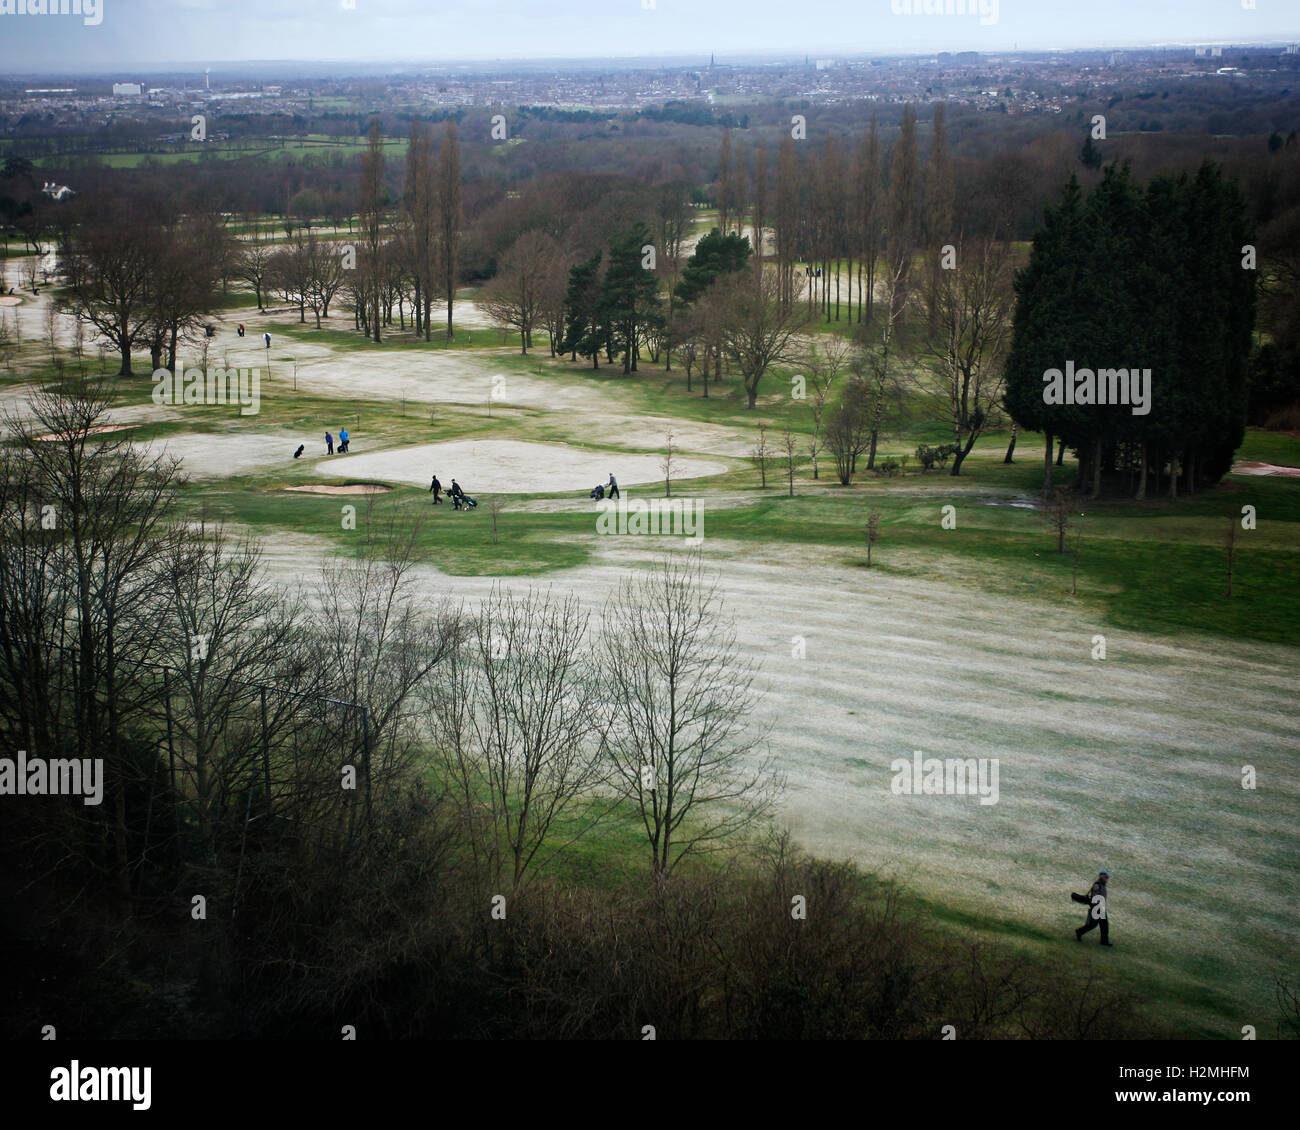 Golfers walking on frosty golf course - Stock Image